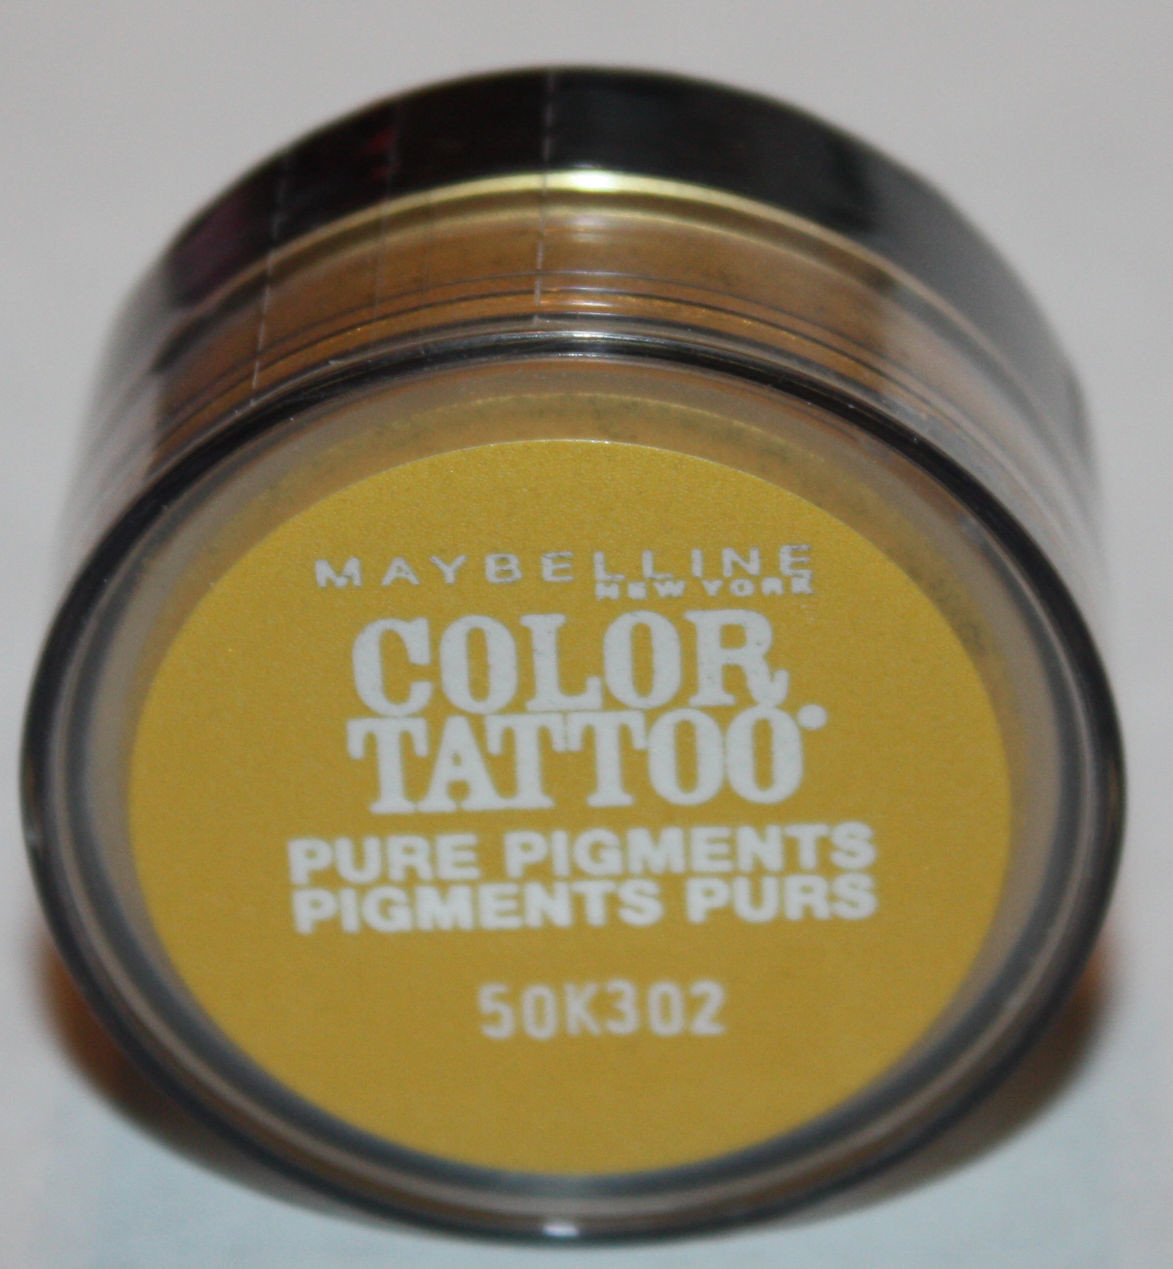 Maybelline Color Tattoo Pure Pigments Eyeshadow -#25 Wild Gold